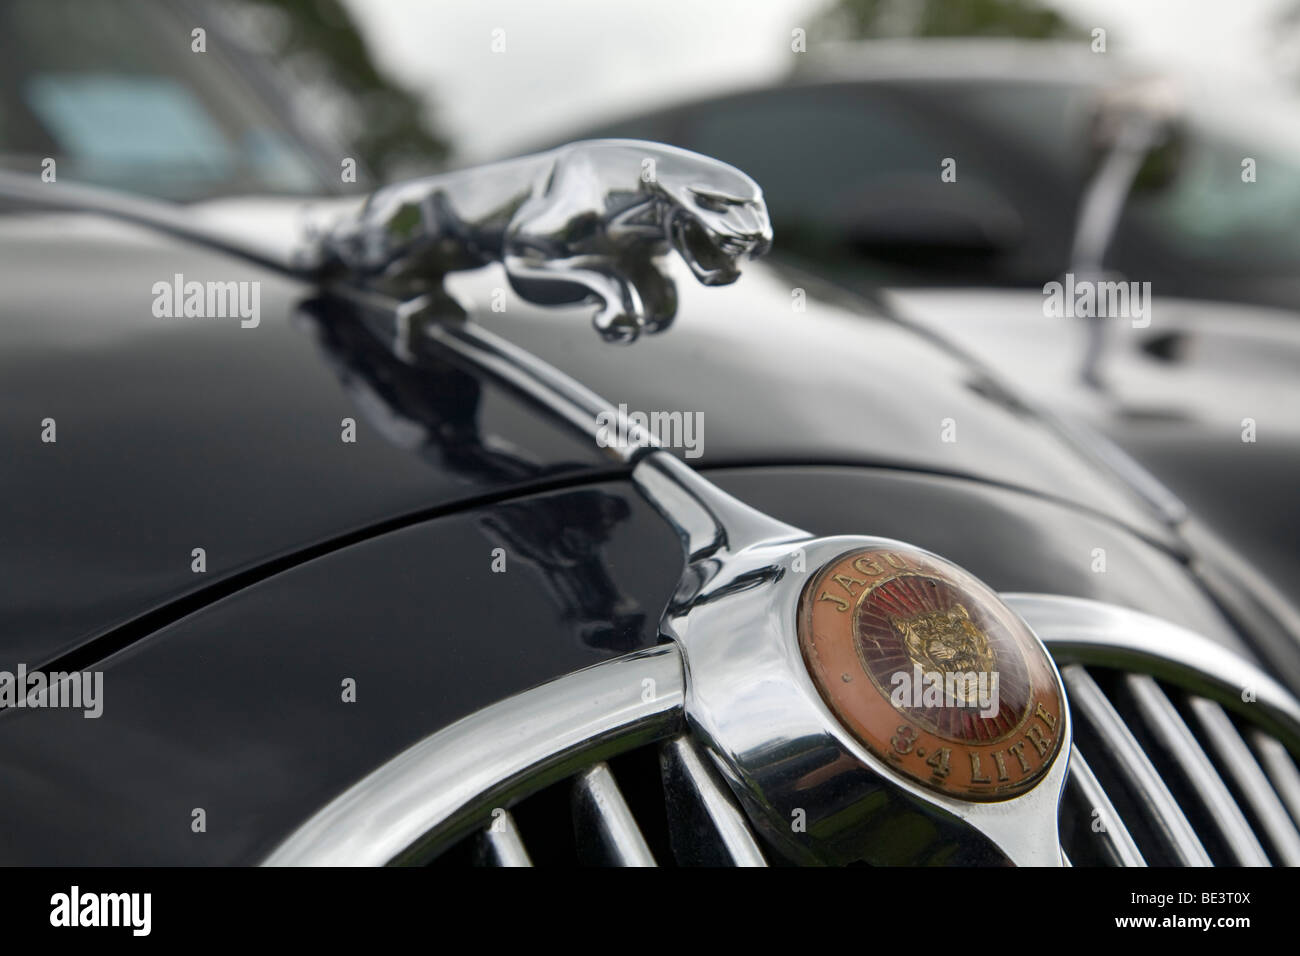 Leaping jaguar hood ornament